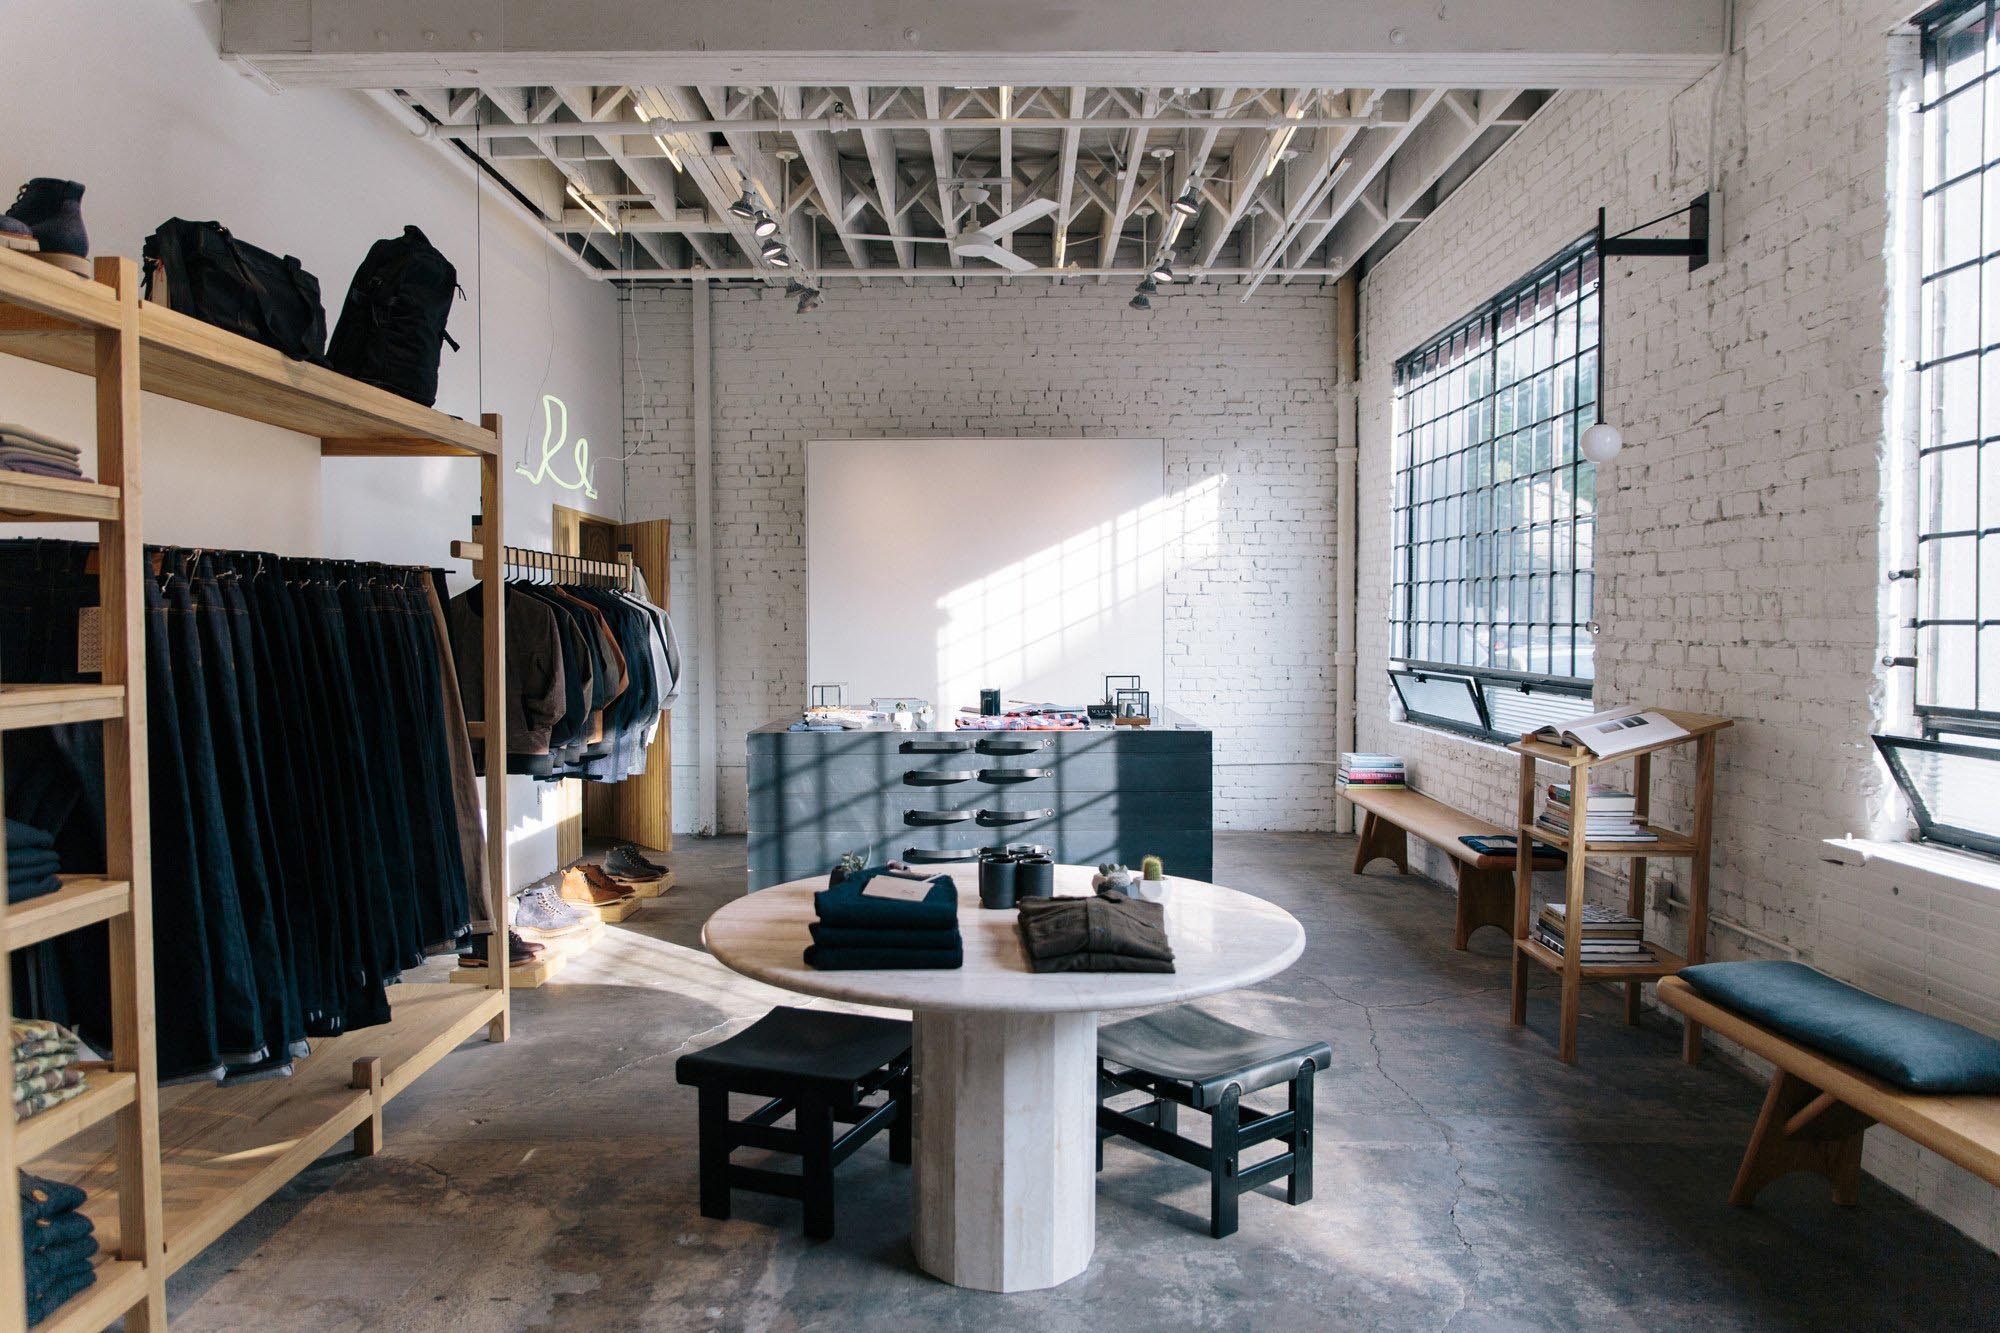 Our Friends At Postmark Helped Design And Develop The Interior Of The New  3Sixteen Flagship Store In LA. They Created Custom Fixtures And Custom  Furniture ...